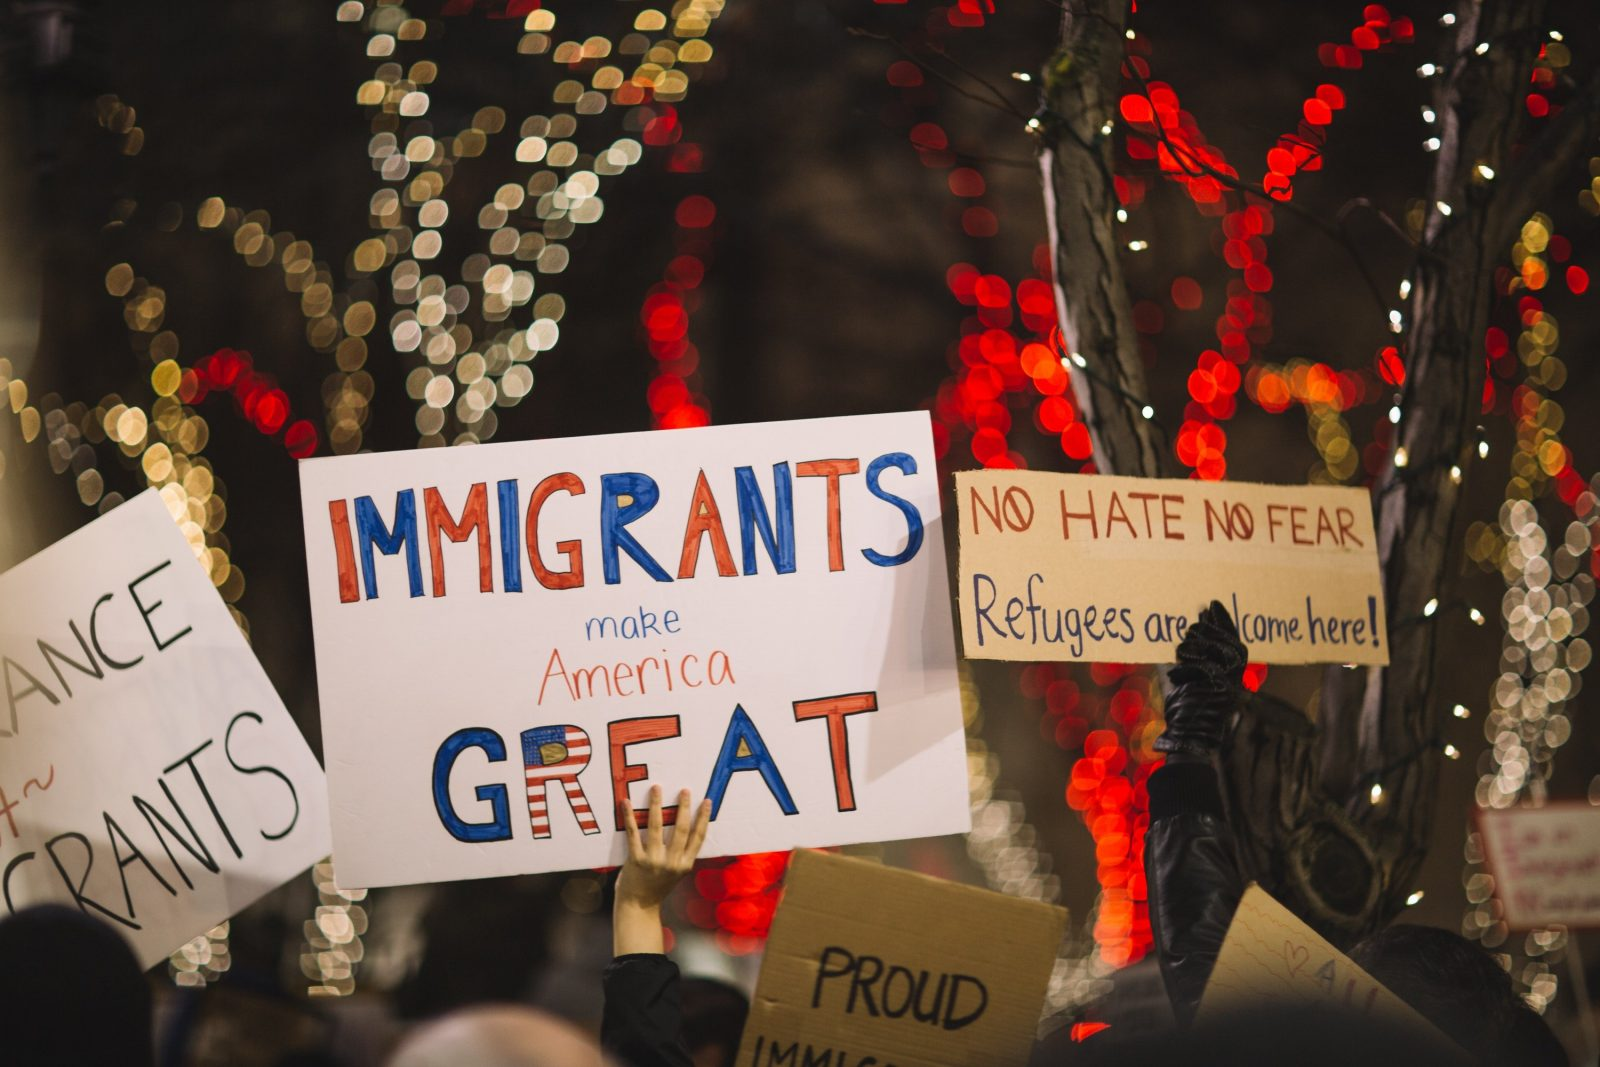 VIDEO: University Challenge – Trump's immigration policy